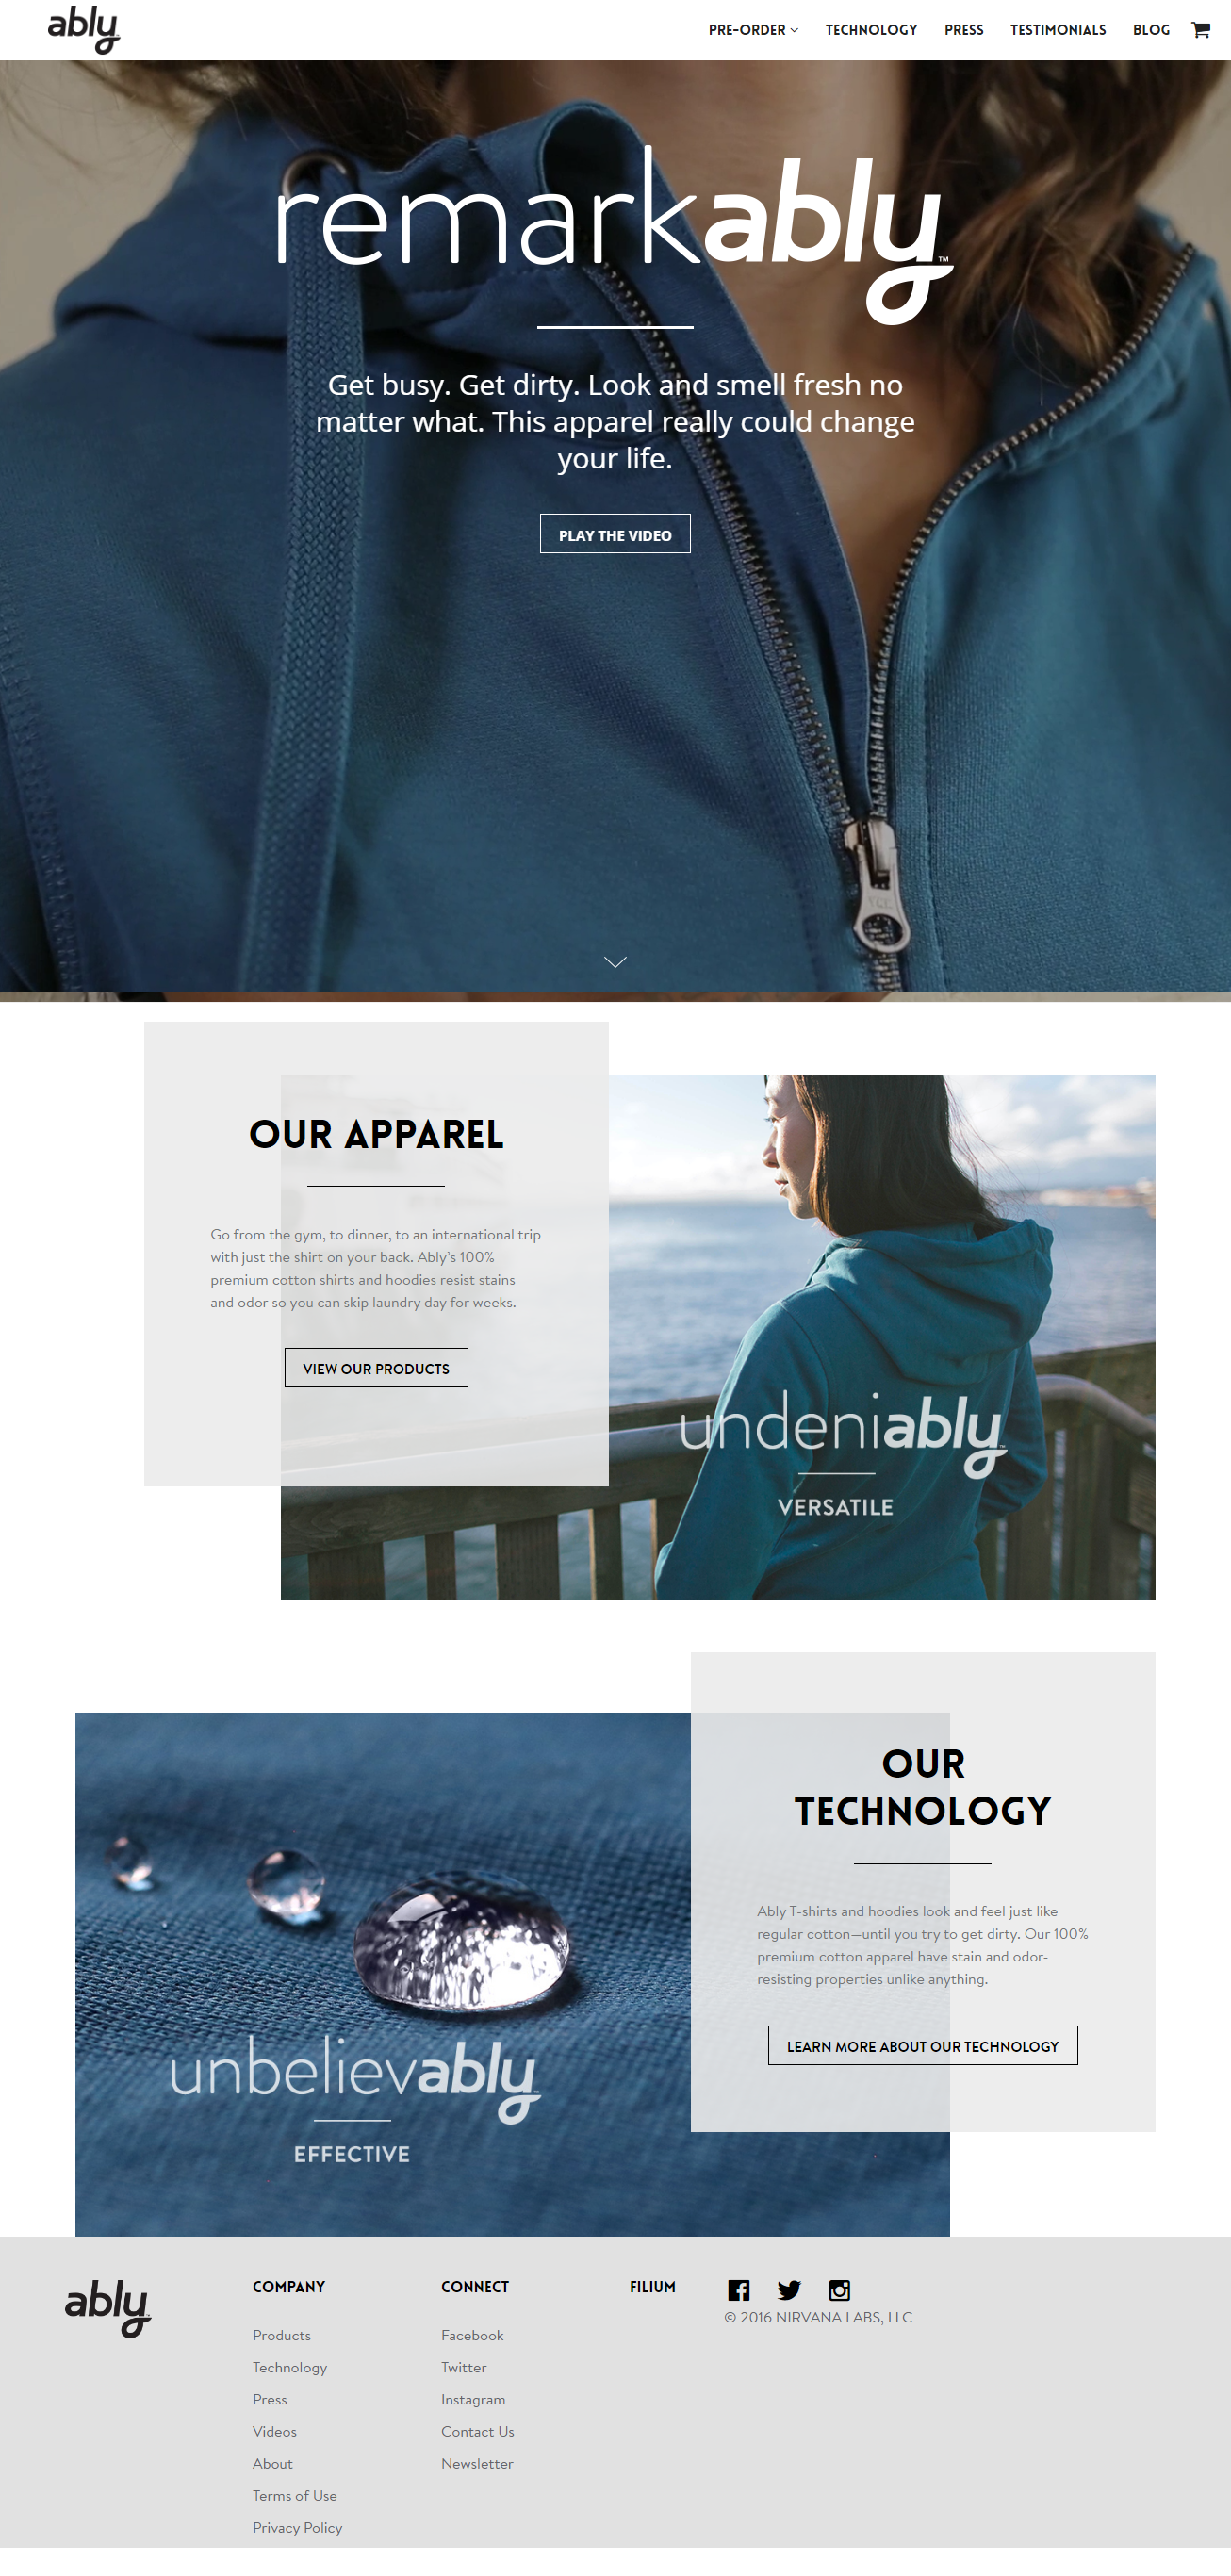 ably-apparel